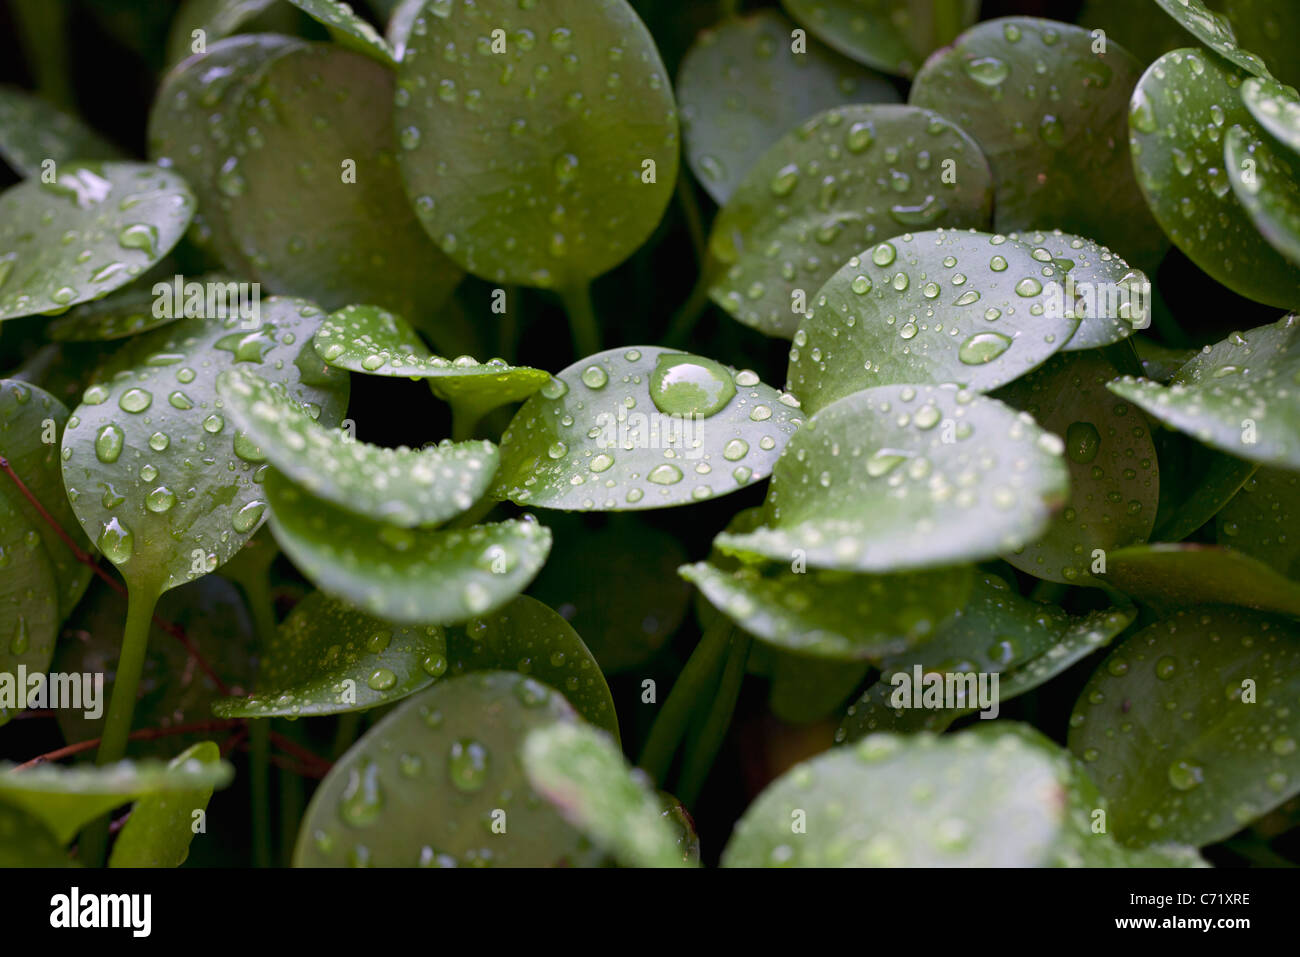 Droplets on peperomia leaves - Stock Image